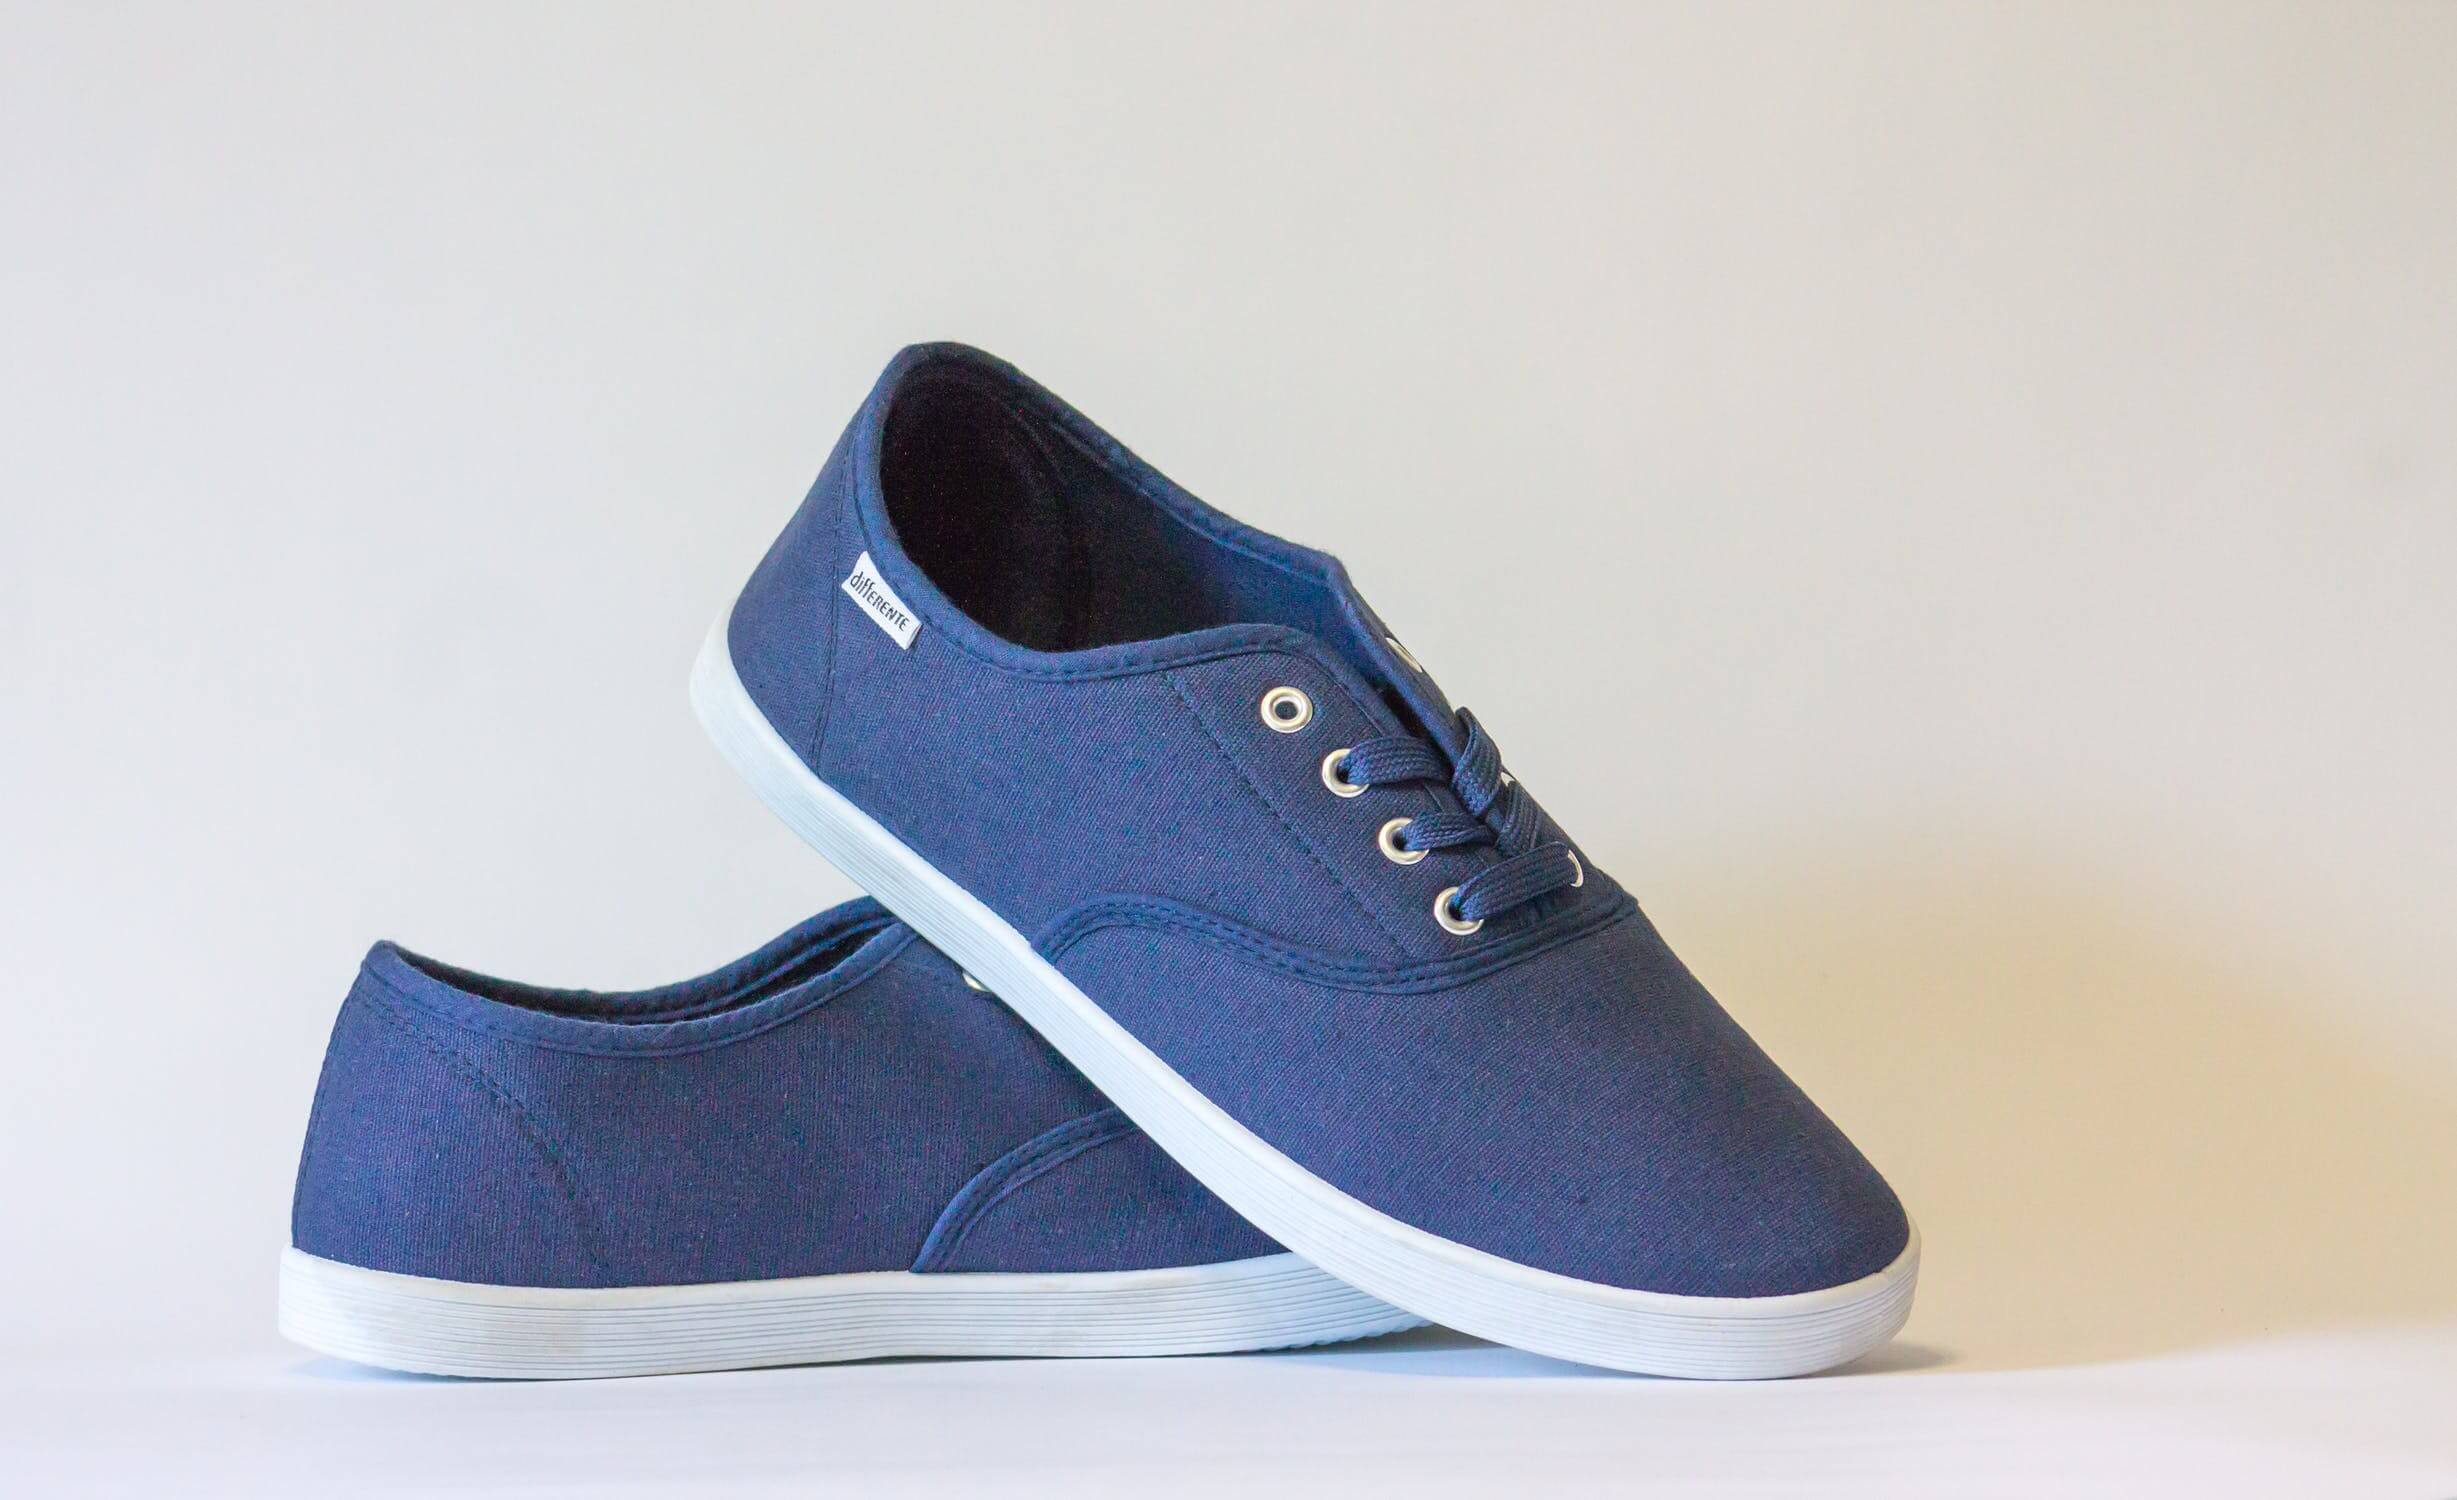 A pair of blue walking shoes. Having quality shoes can help with fall prevention